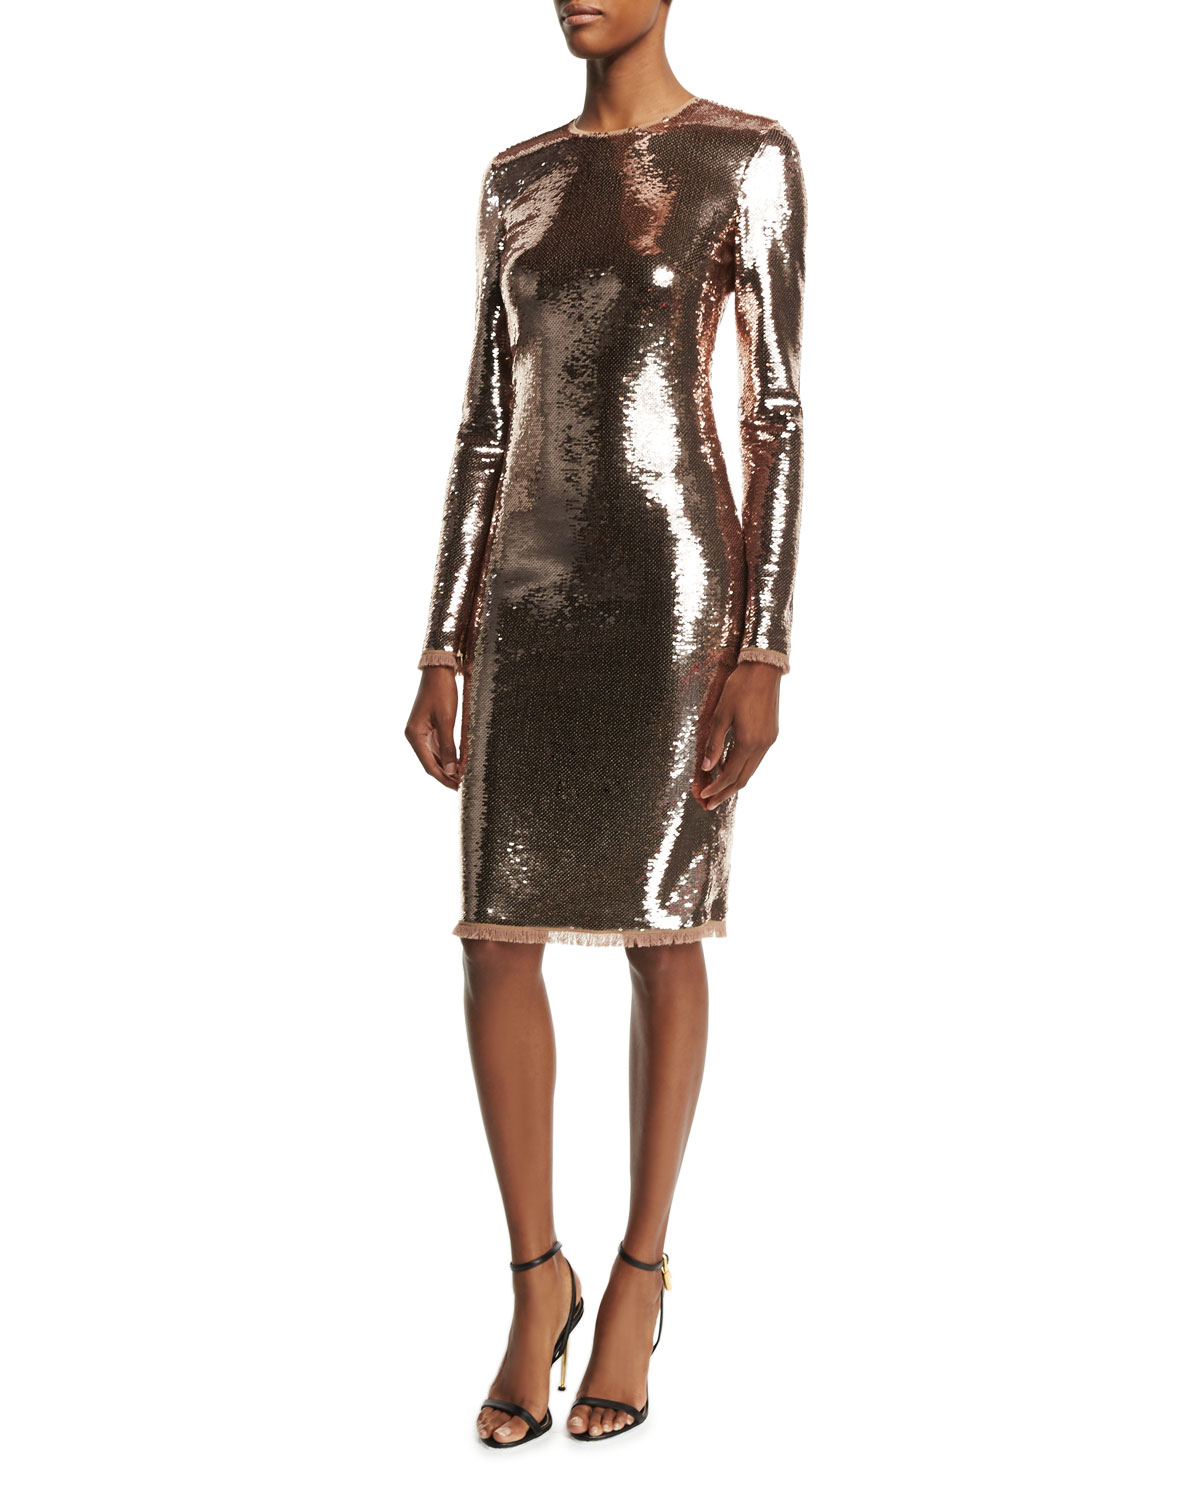 TOM FORD Long-Sleeve Liquid Sequin Dress, Nude | Neiman Marcus